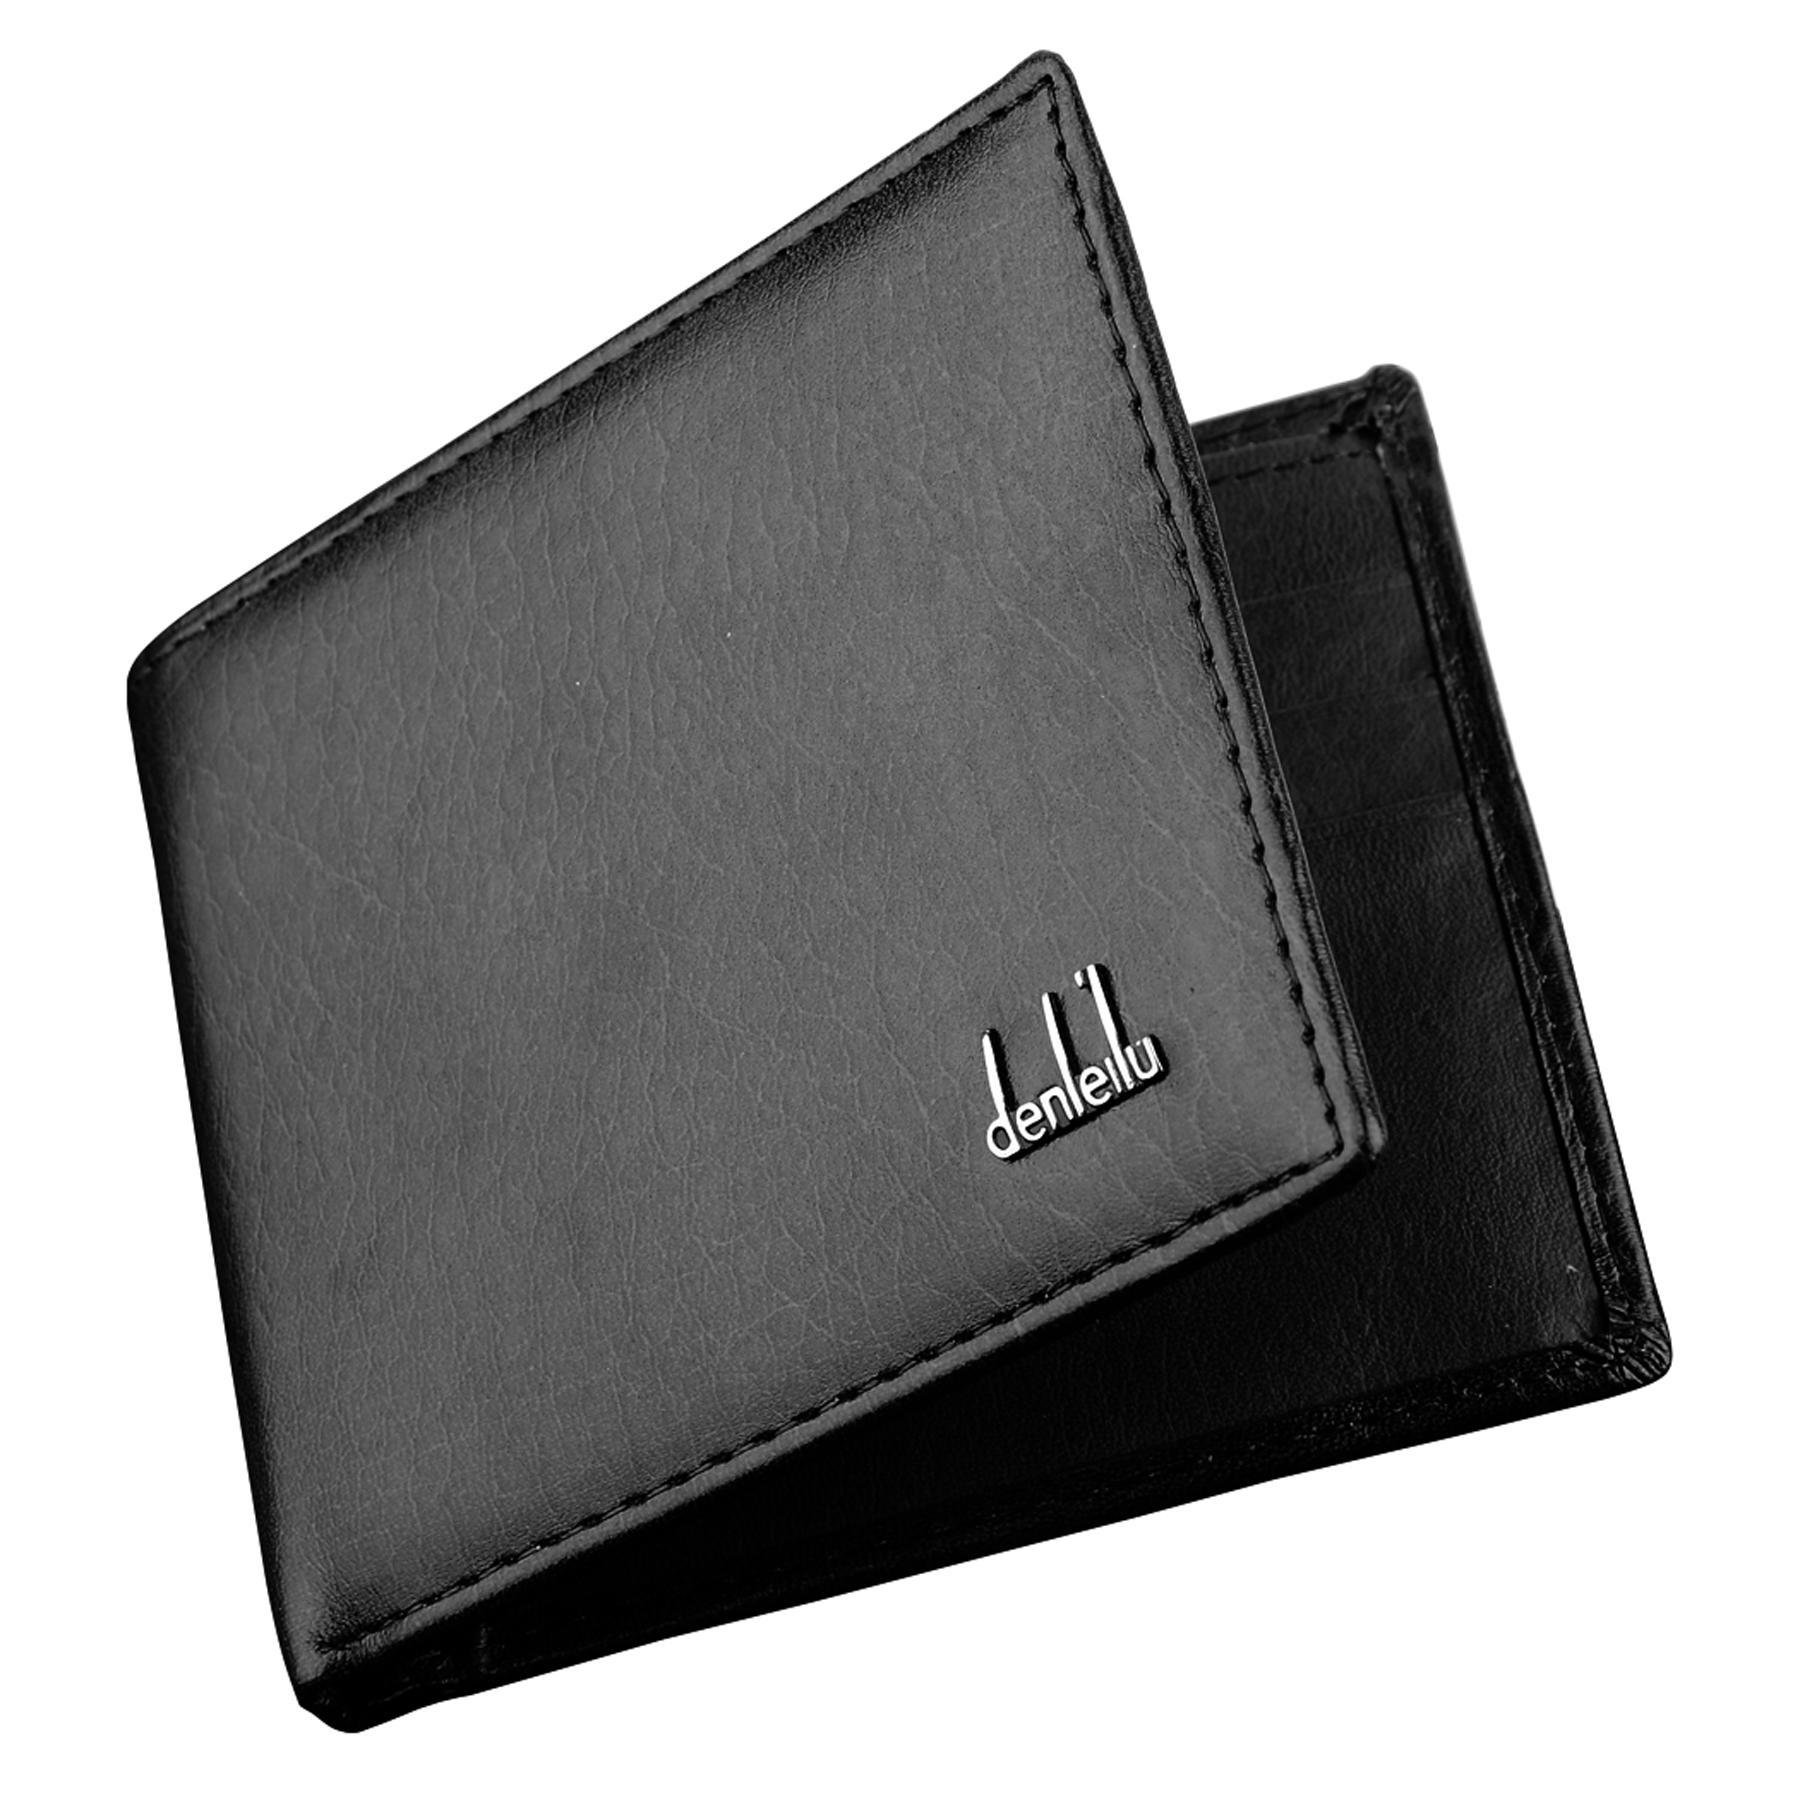 Mekolen Mens Synthetic Leather Wallet Money Pockets Credit/ID Cards Holder Portable Wallet Classic Purse 2 Colors Wallets,Black